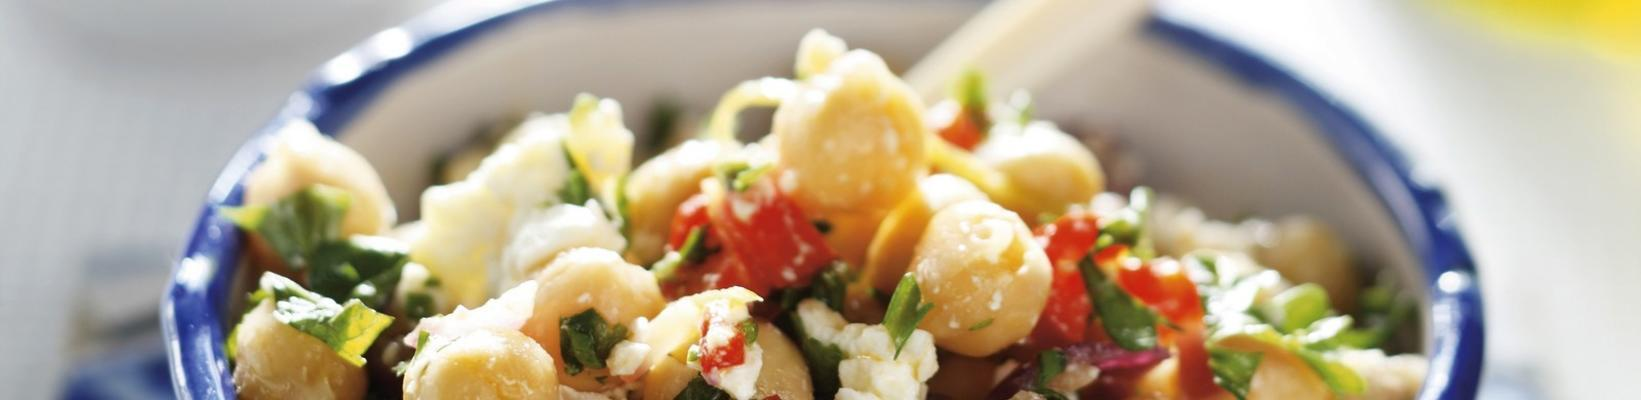 spicy chickpea salad with feta